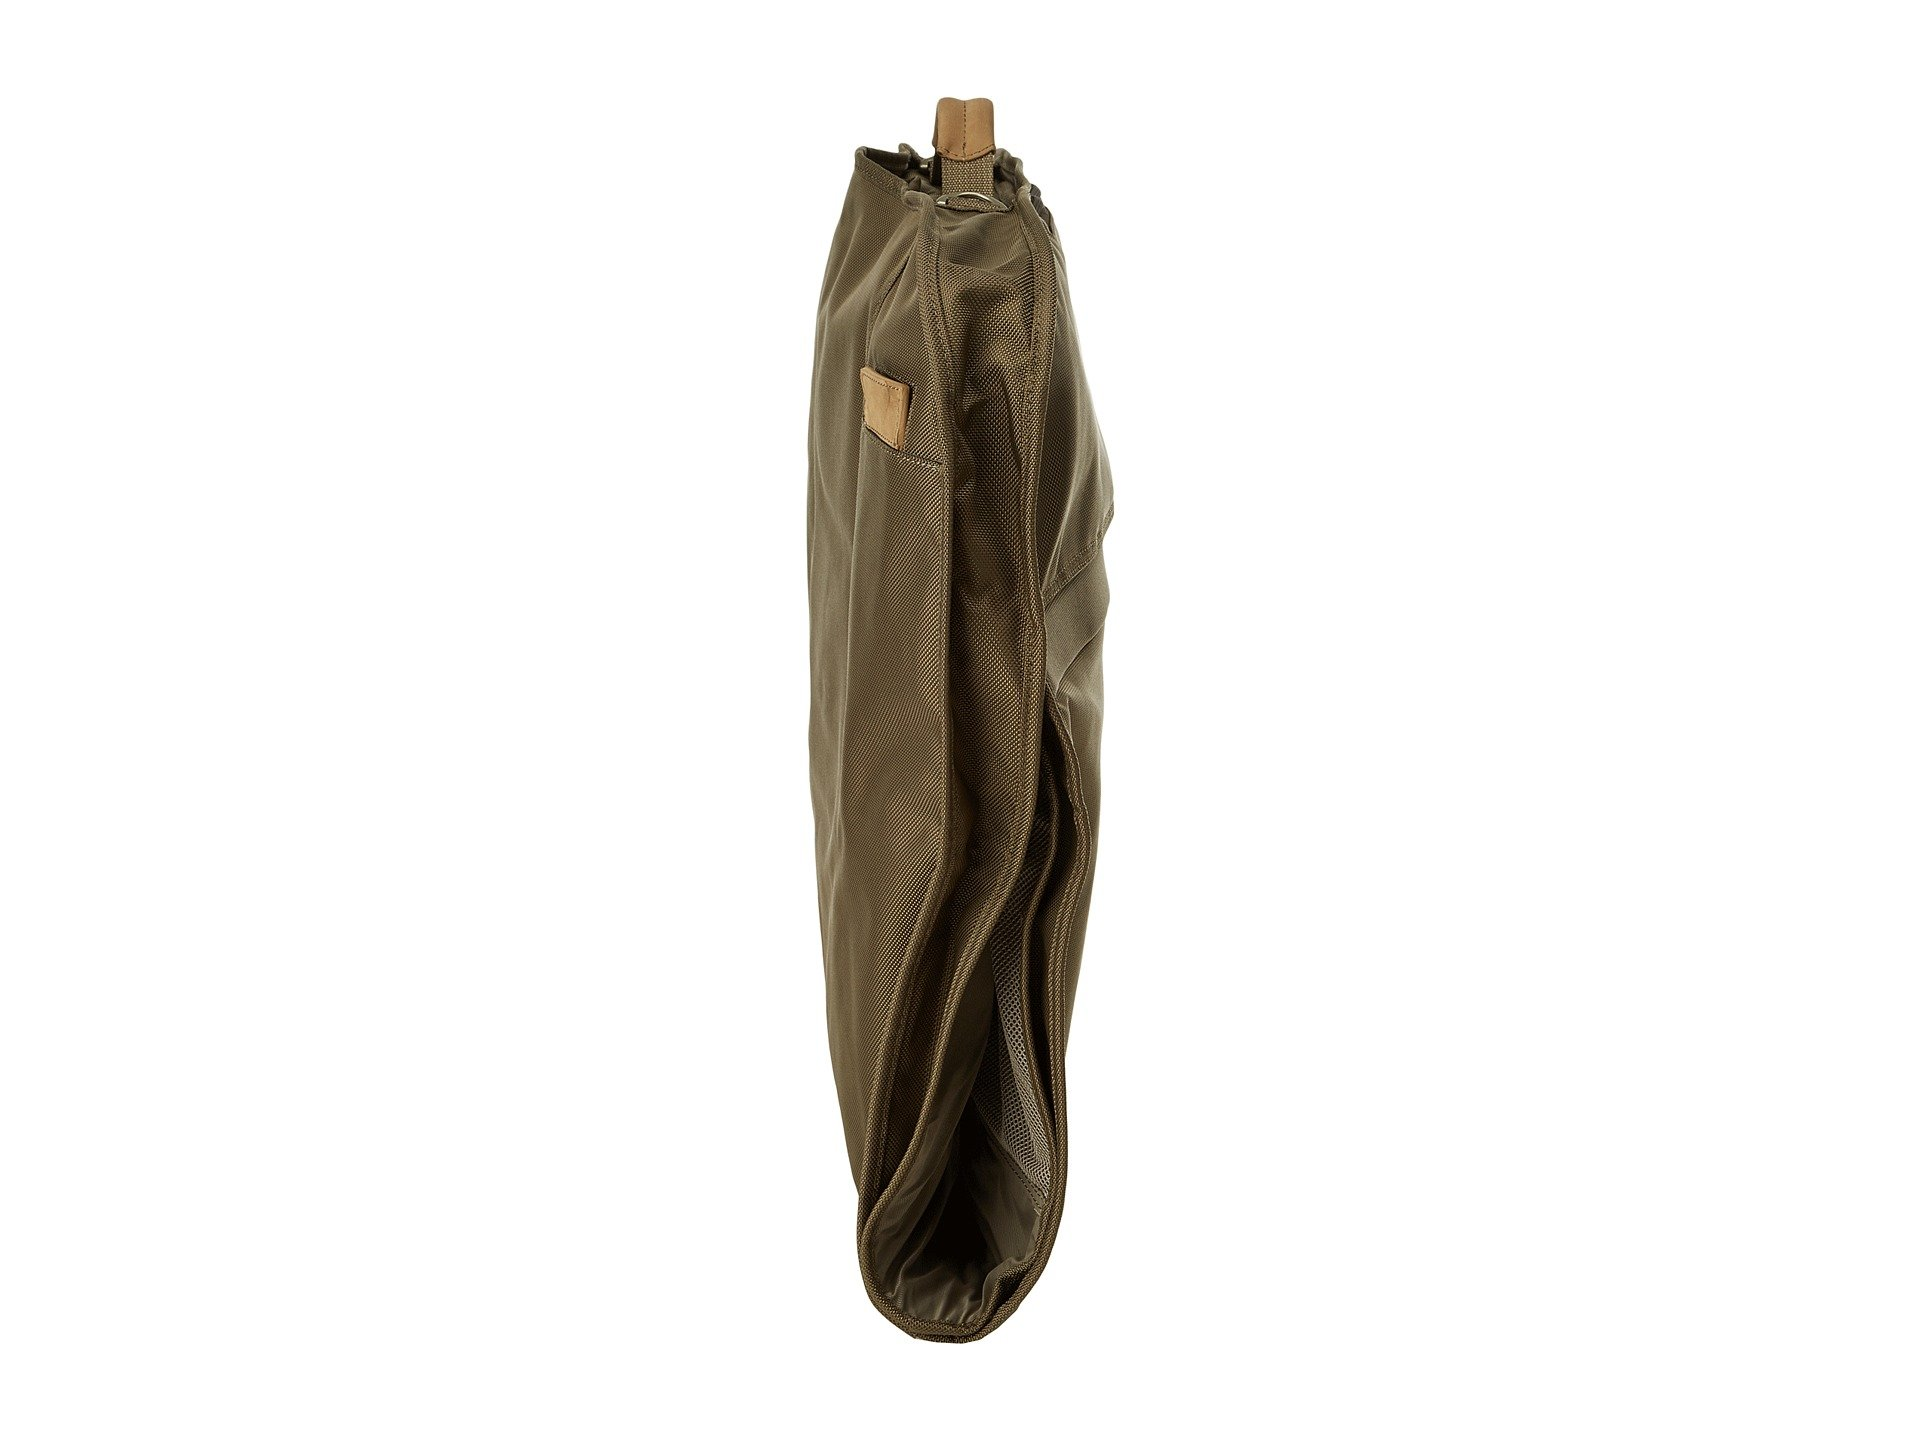 Baseline Cover Garment amp; Olive Classic Riley Briggs 4gEwqxCpx